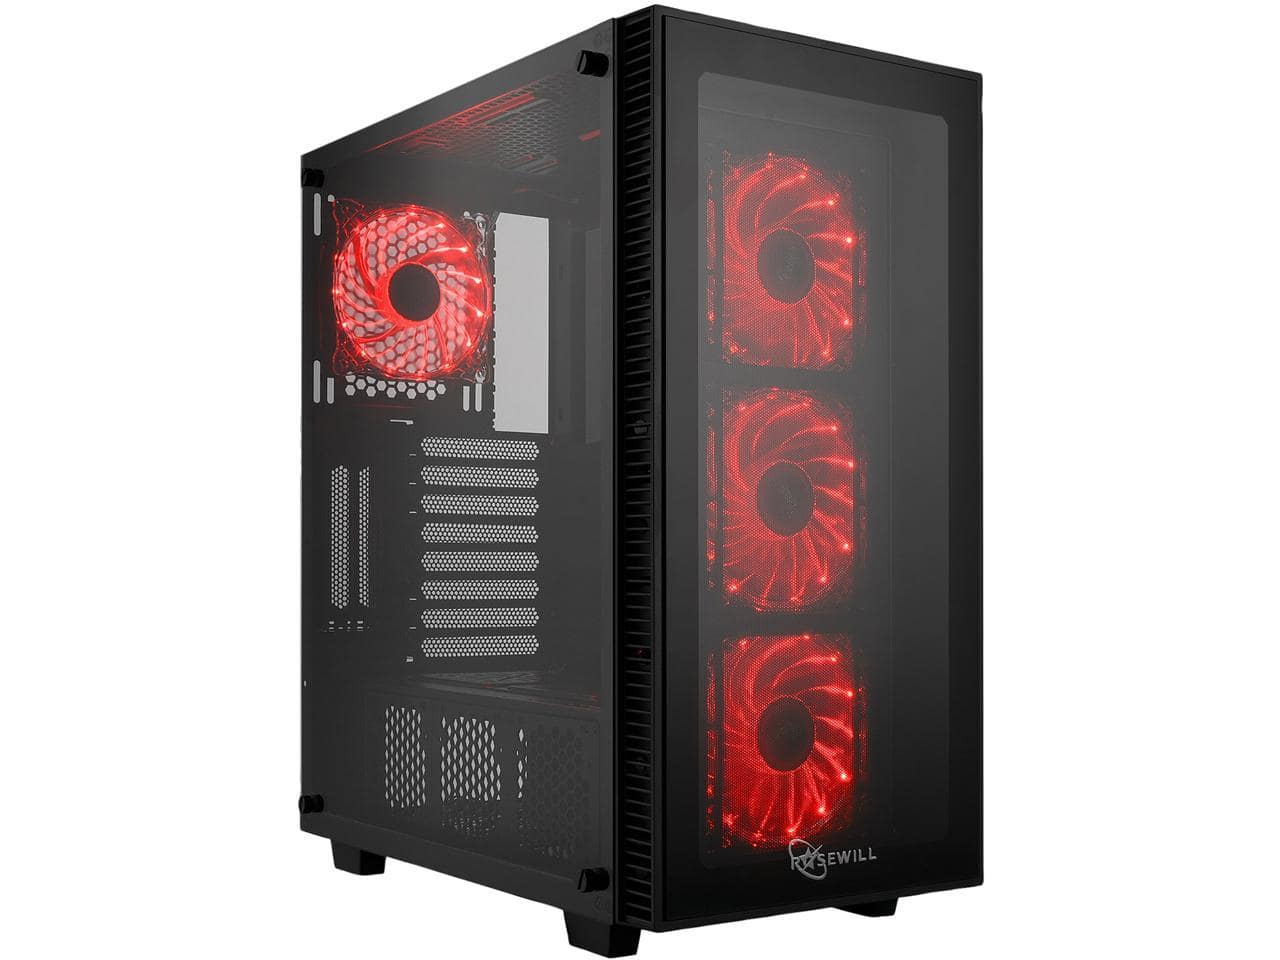 Rosewill ATX Mid Tower Gaming PC Computer Case with Red LED Fans, Tempered Glass/Steel, Optimal Airflow, USB 3.0 - CULLINAN MX-RED $59.99